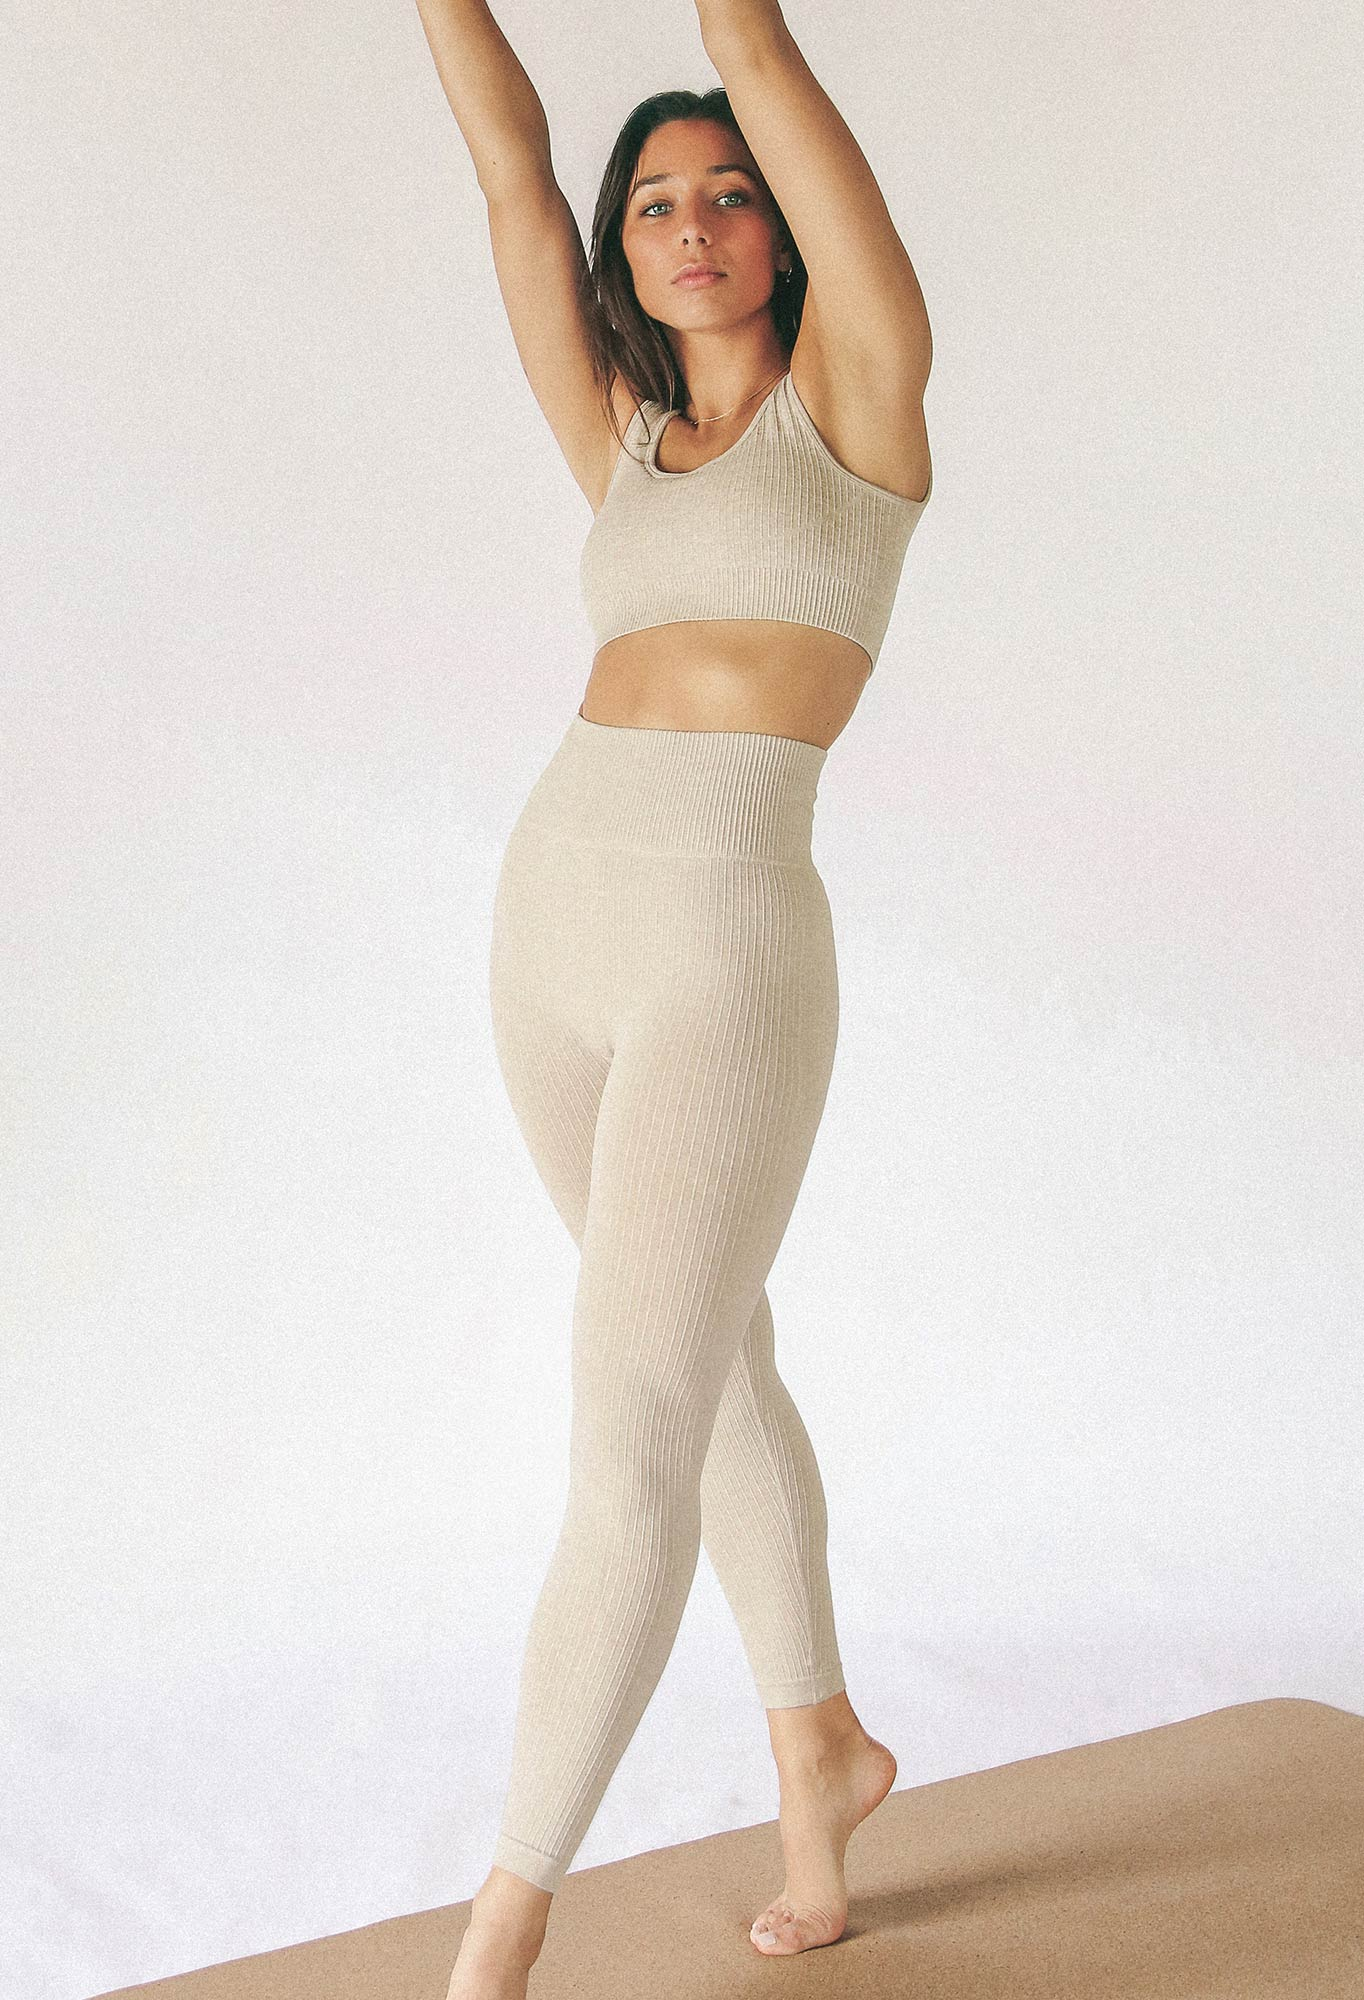 model wearing seamless sports bra and seamless legging in beige colour